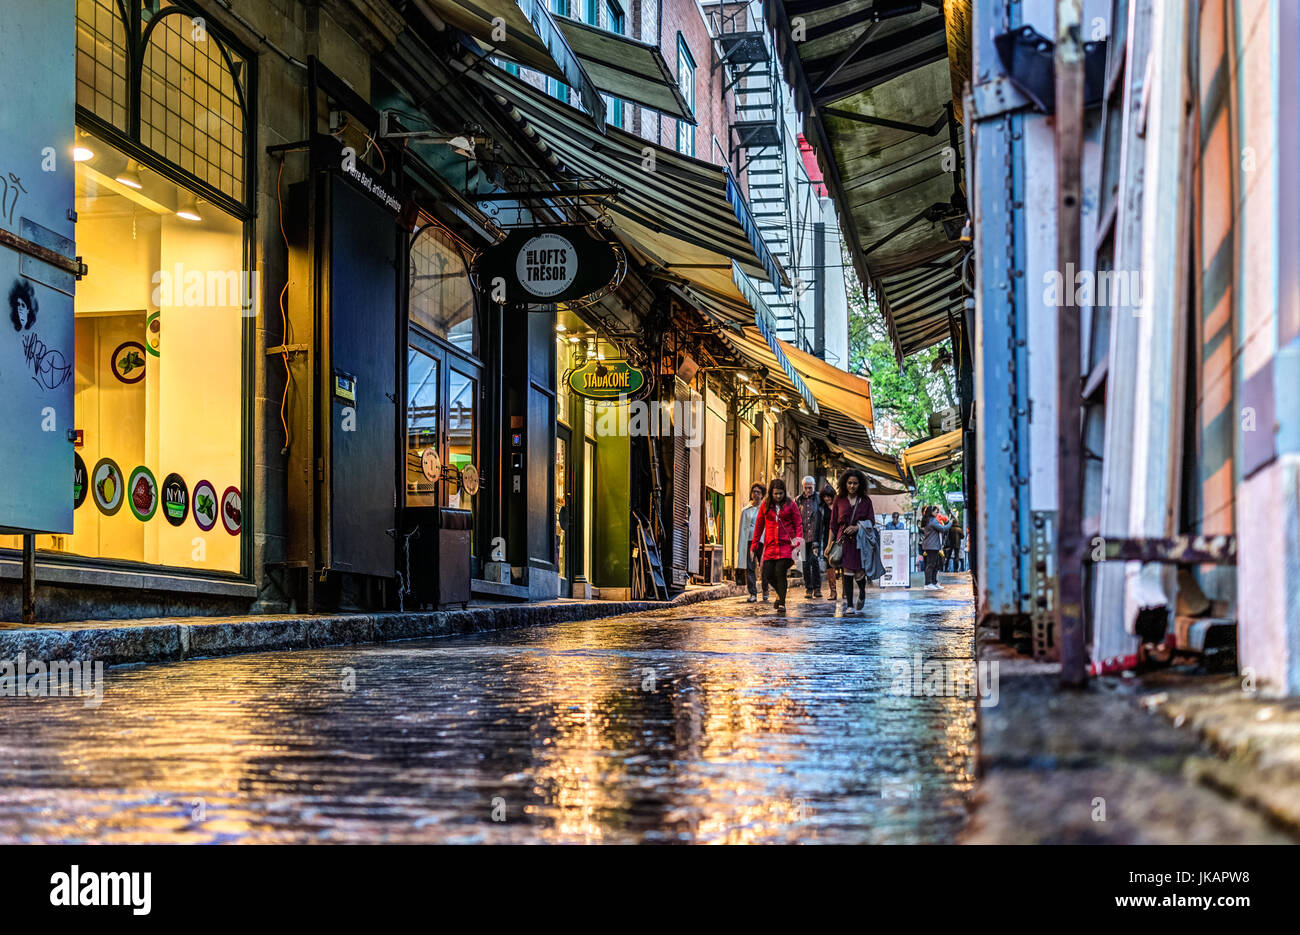 Quebec City, Canada - May 31, 2017: Old town street called Rue Tresor with shops and people walking on wet sidewalk Stock Photo